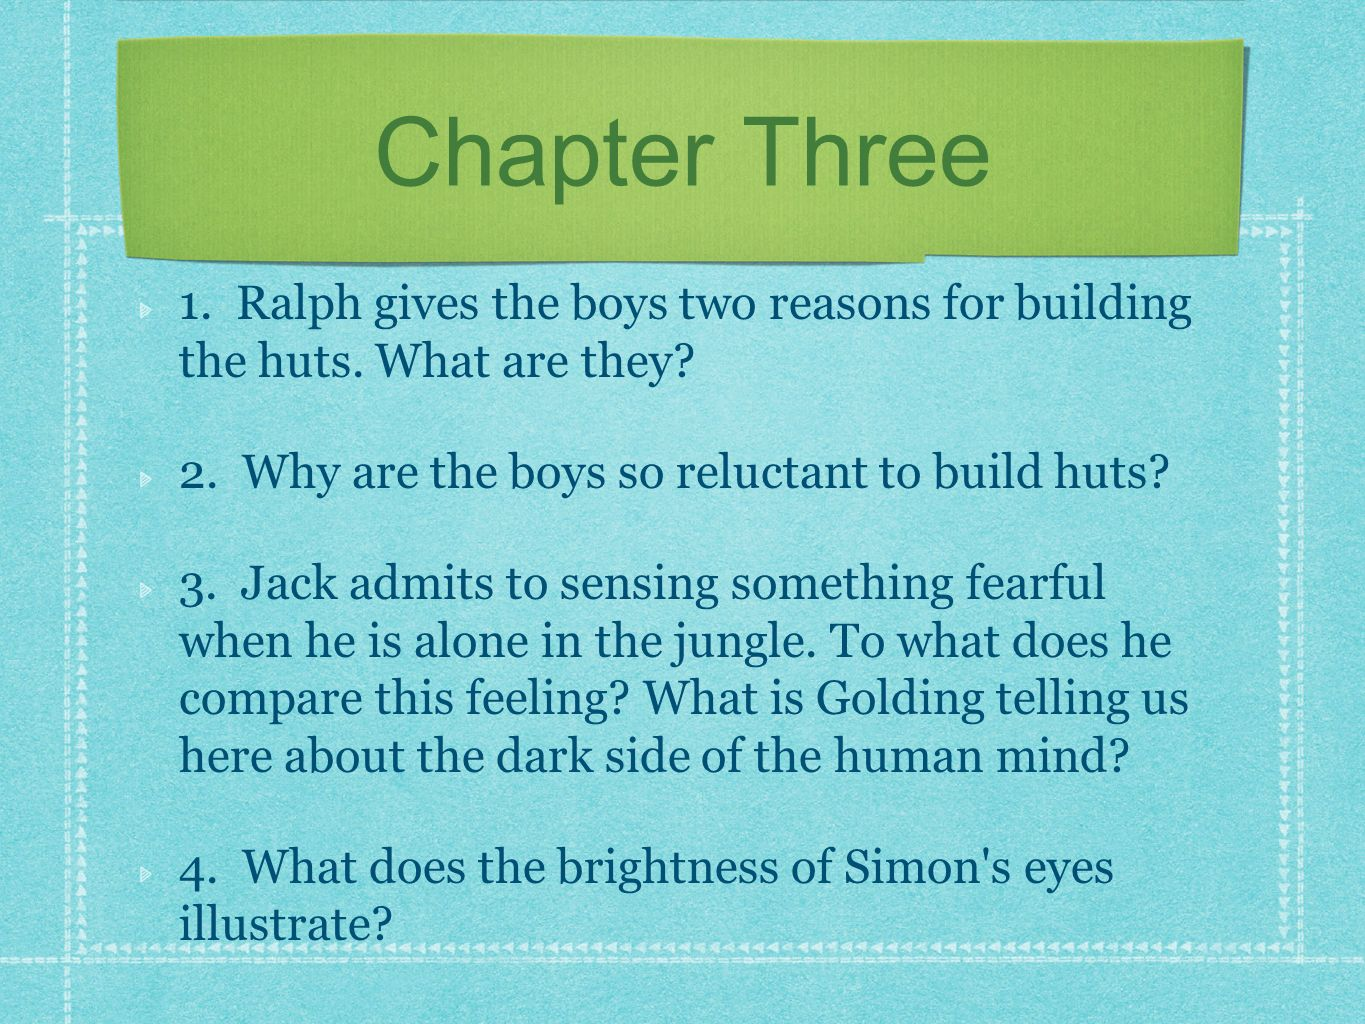 The lord of the flies resources ppt download ralph gives the boys two reasons for building the huts what biocorpaavc